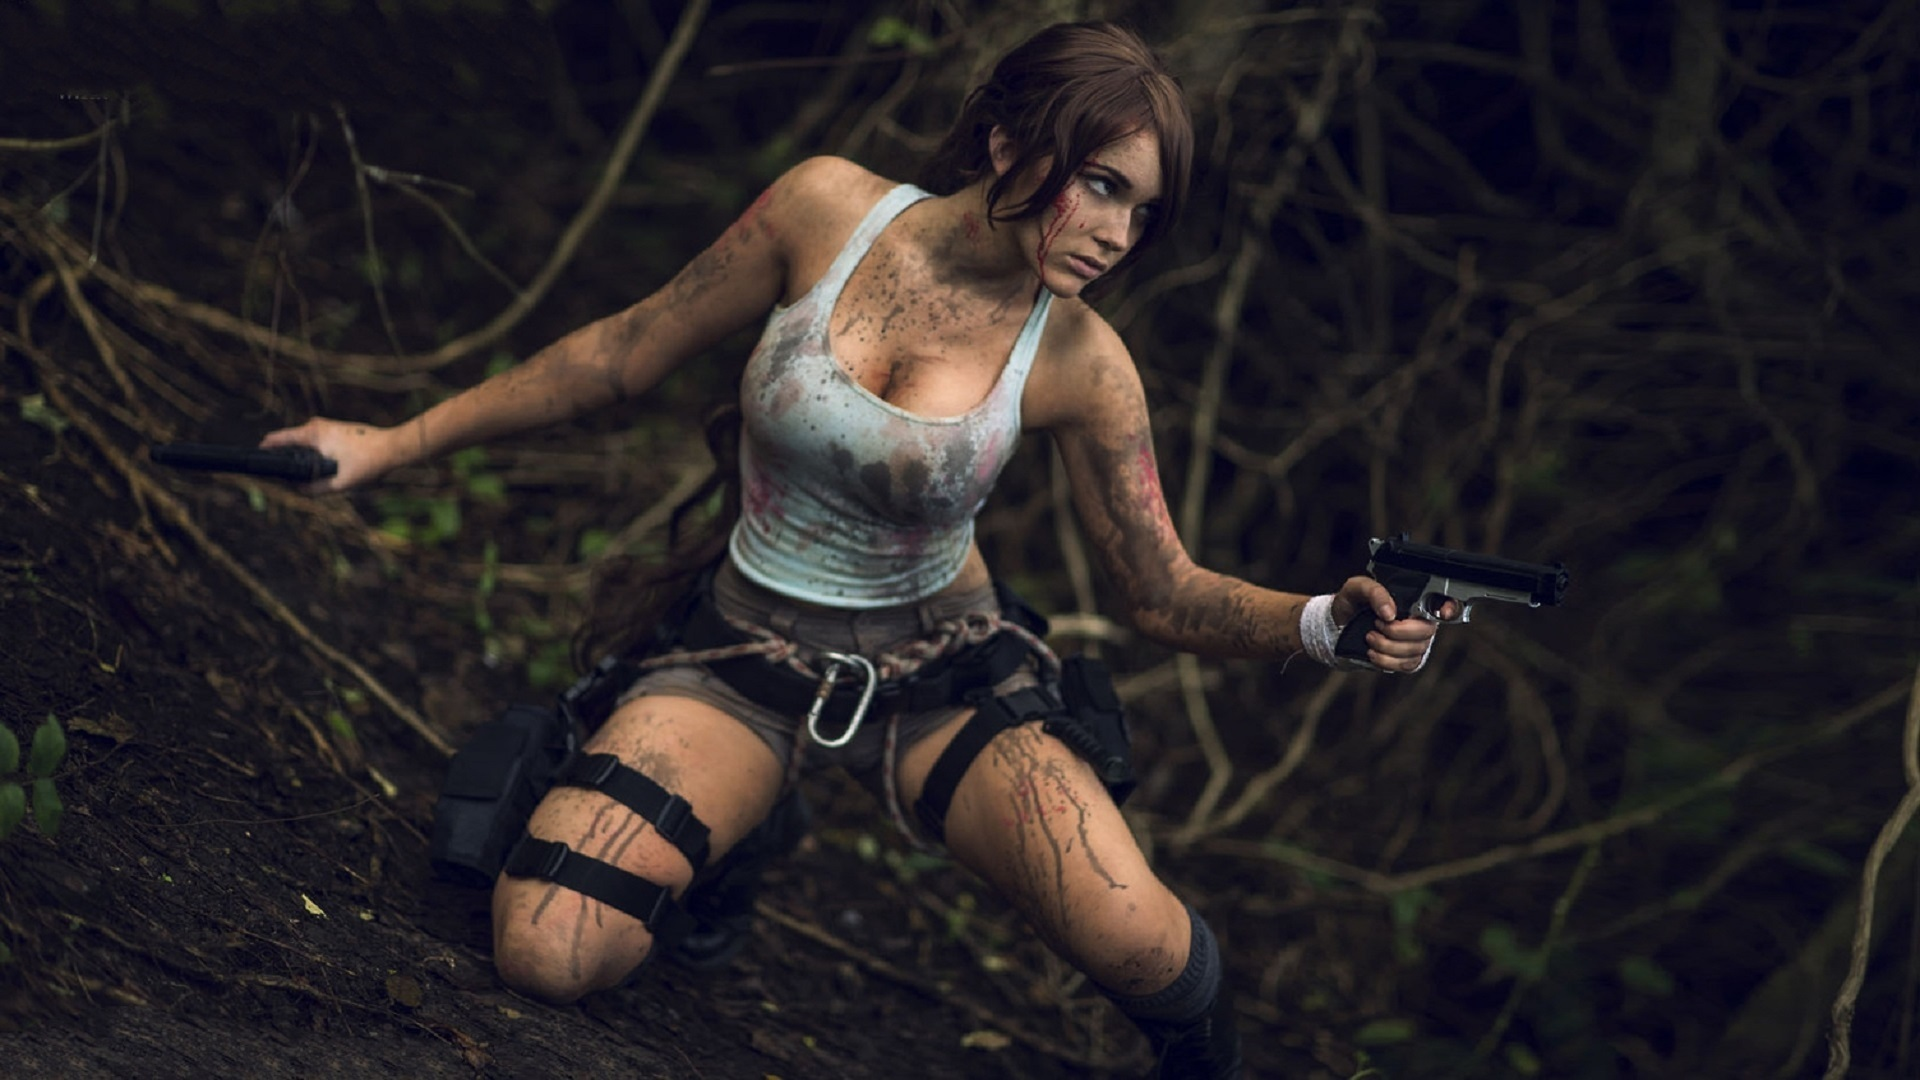 THIS is how you cosplay as lara croft